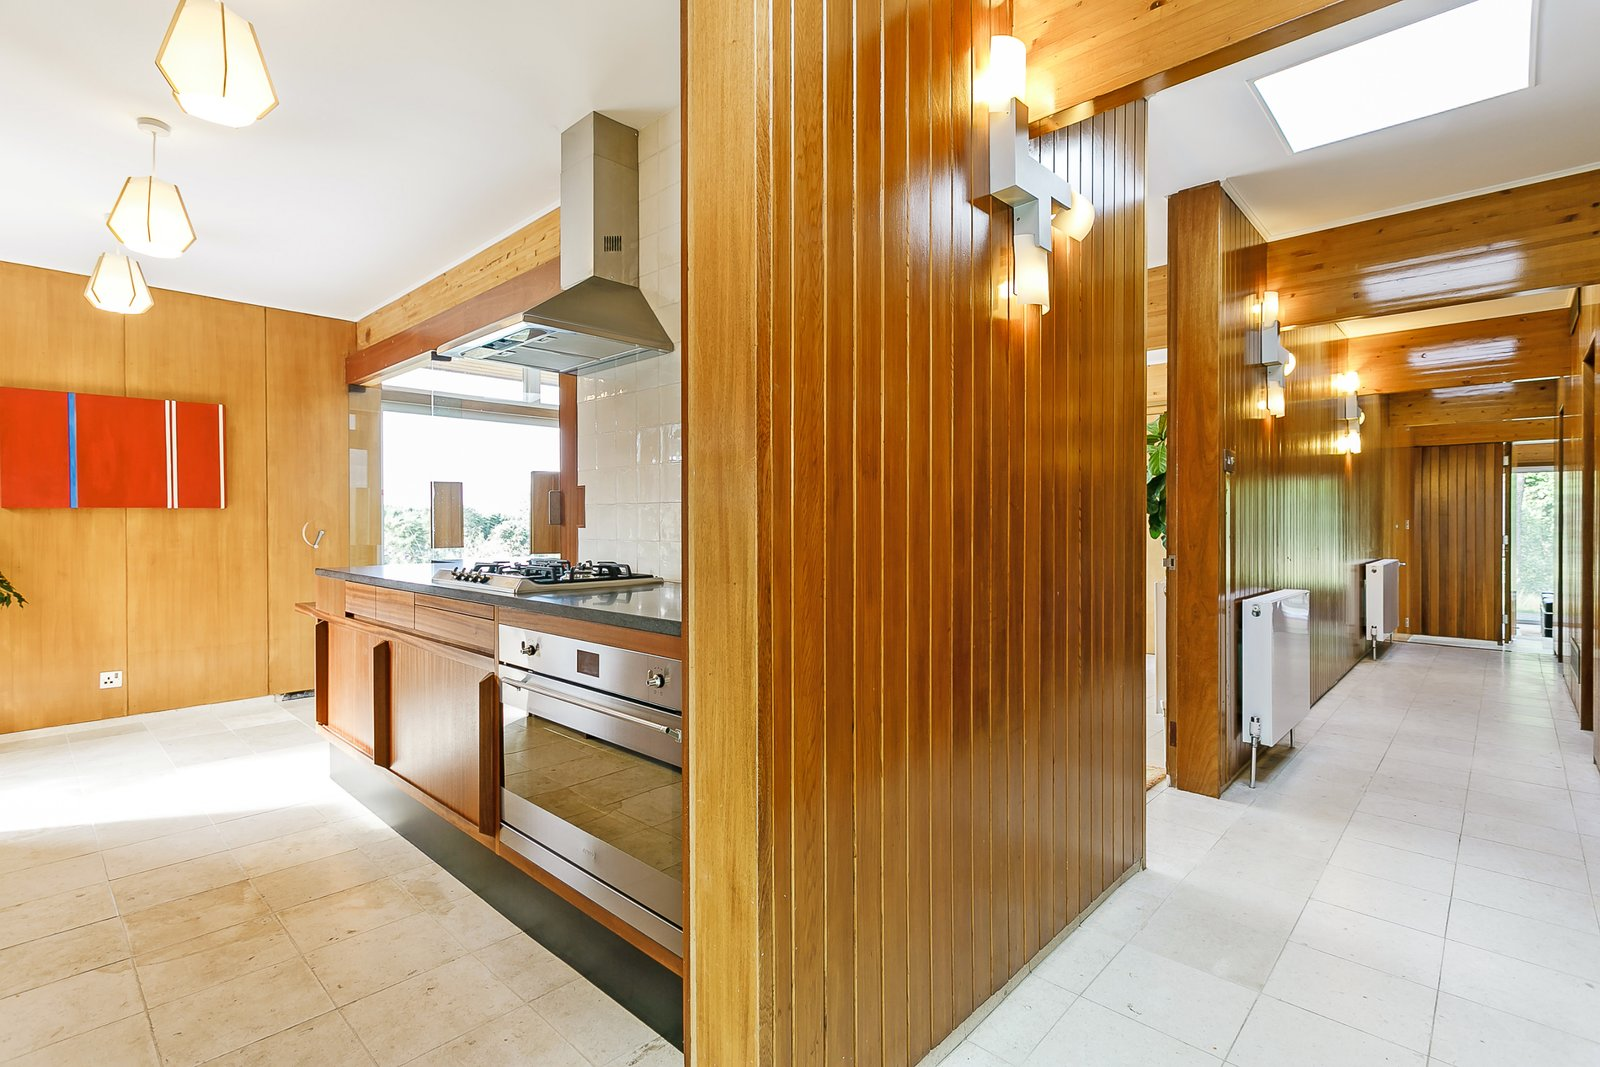 Kitchen, Wall Oven, Range, Wood, Wall, Ceiling, Range Hood, and Subway Tile  Best Kitchen Subway Tile Wall Oven Wood Photos from A Modernist Time Capsule by Erno Goldfinger Asks $4M